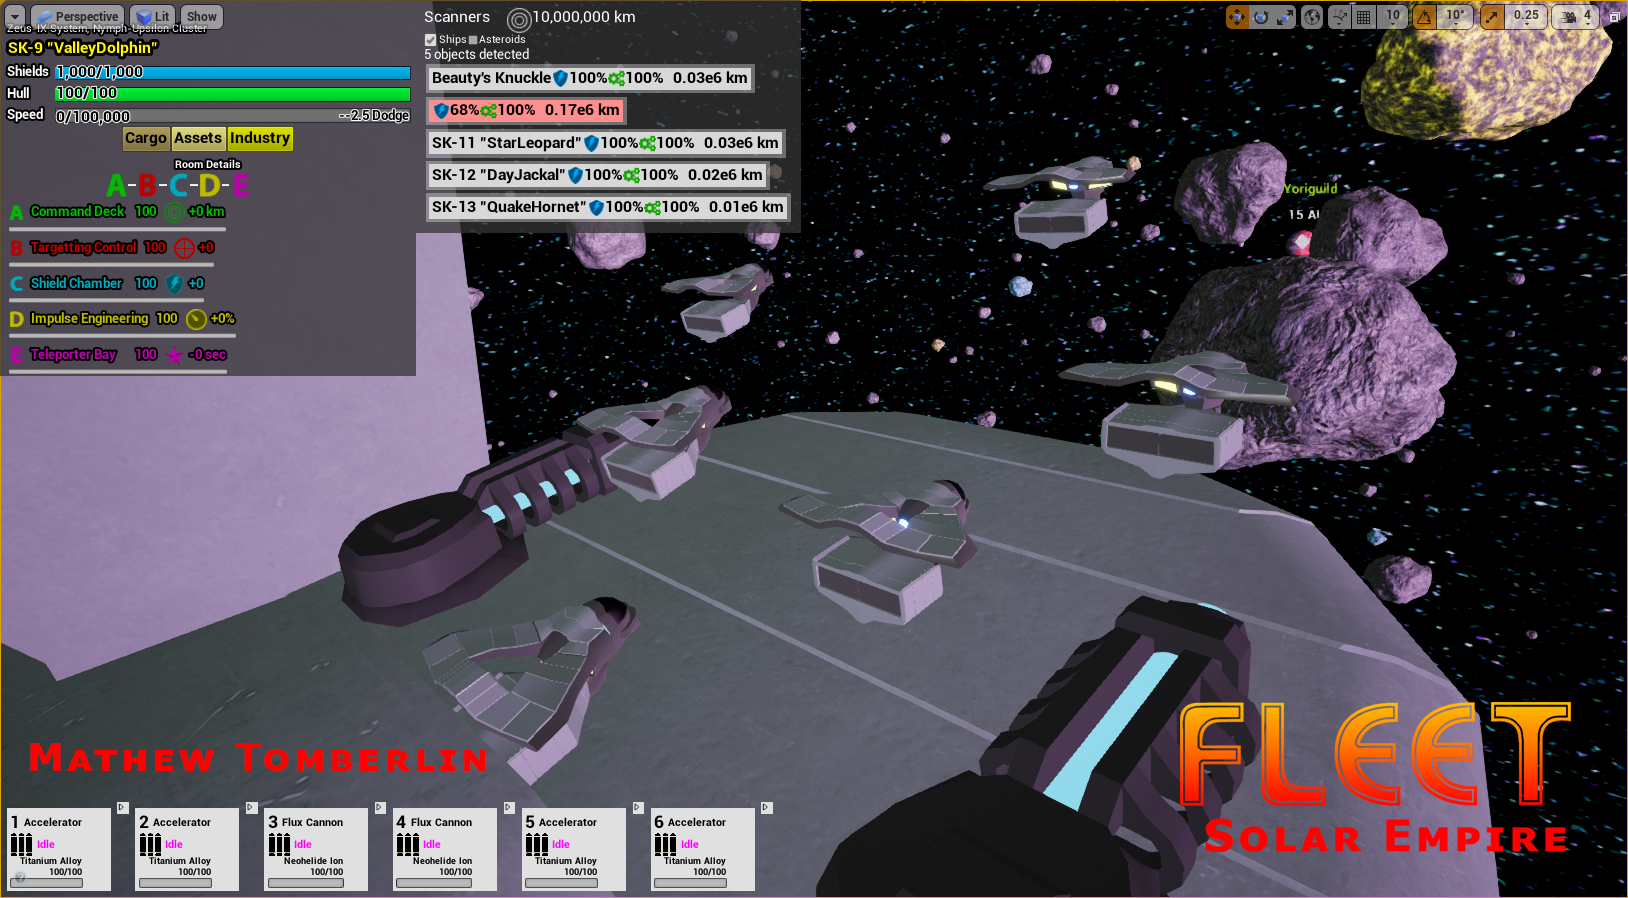 Fighter squadron taking off in front of asteroids